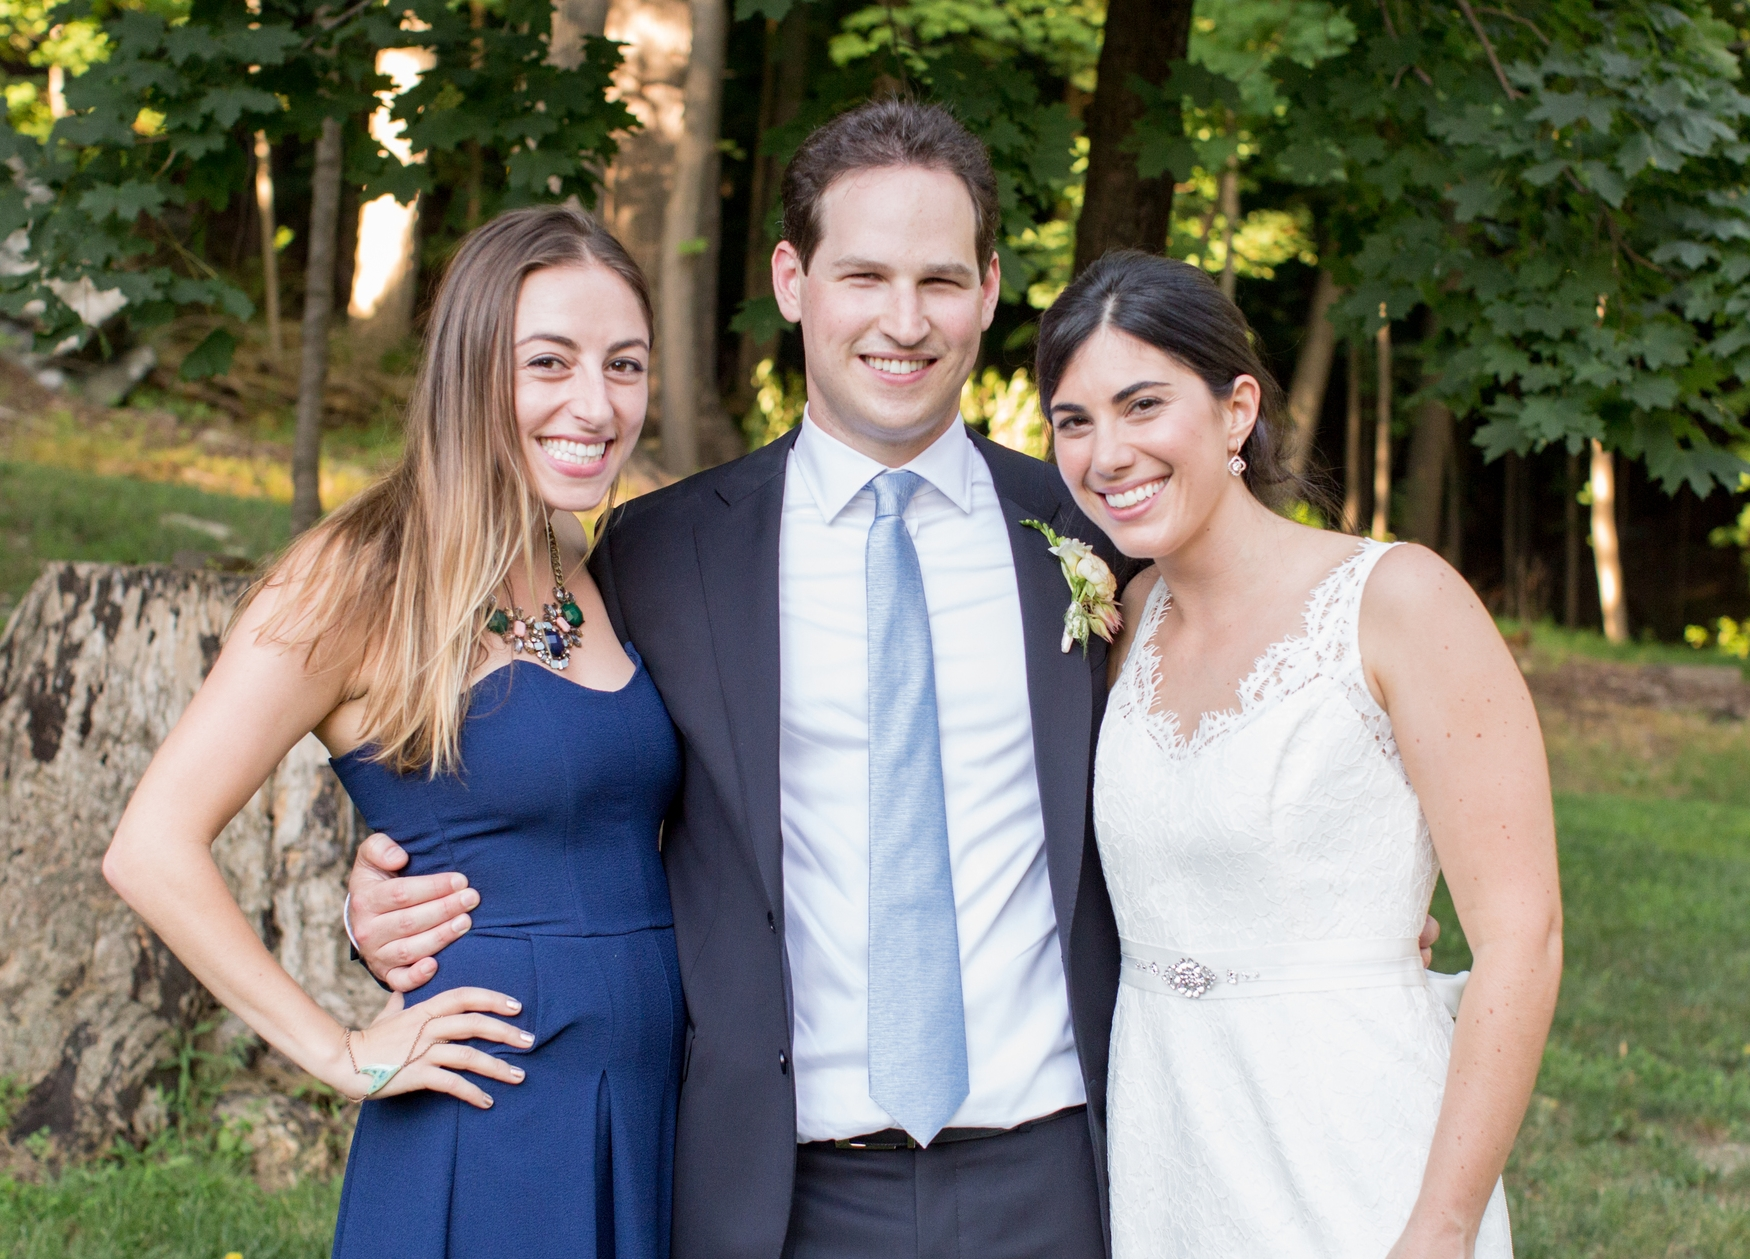 Amanda, Dan and I at our wedding in New York. August 2015  #certainlyfurst